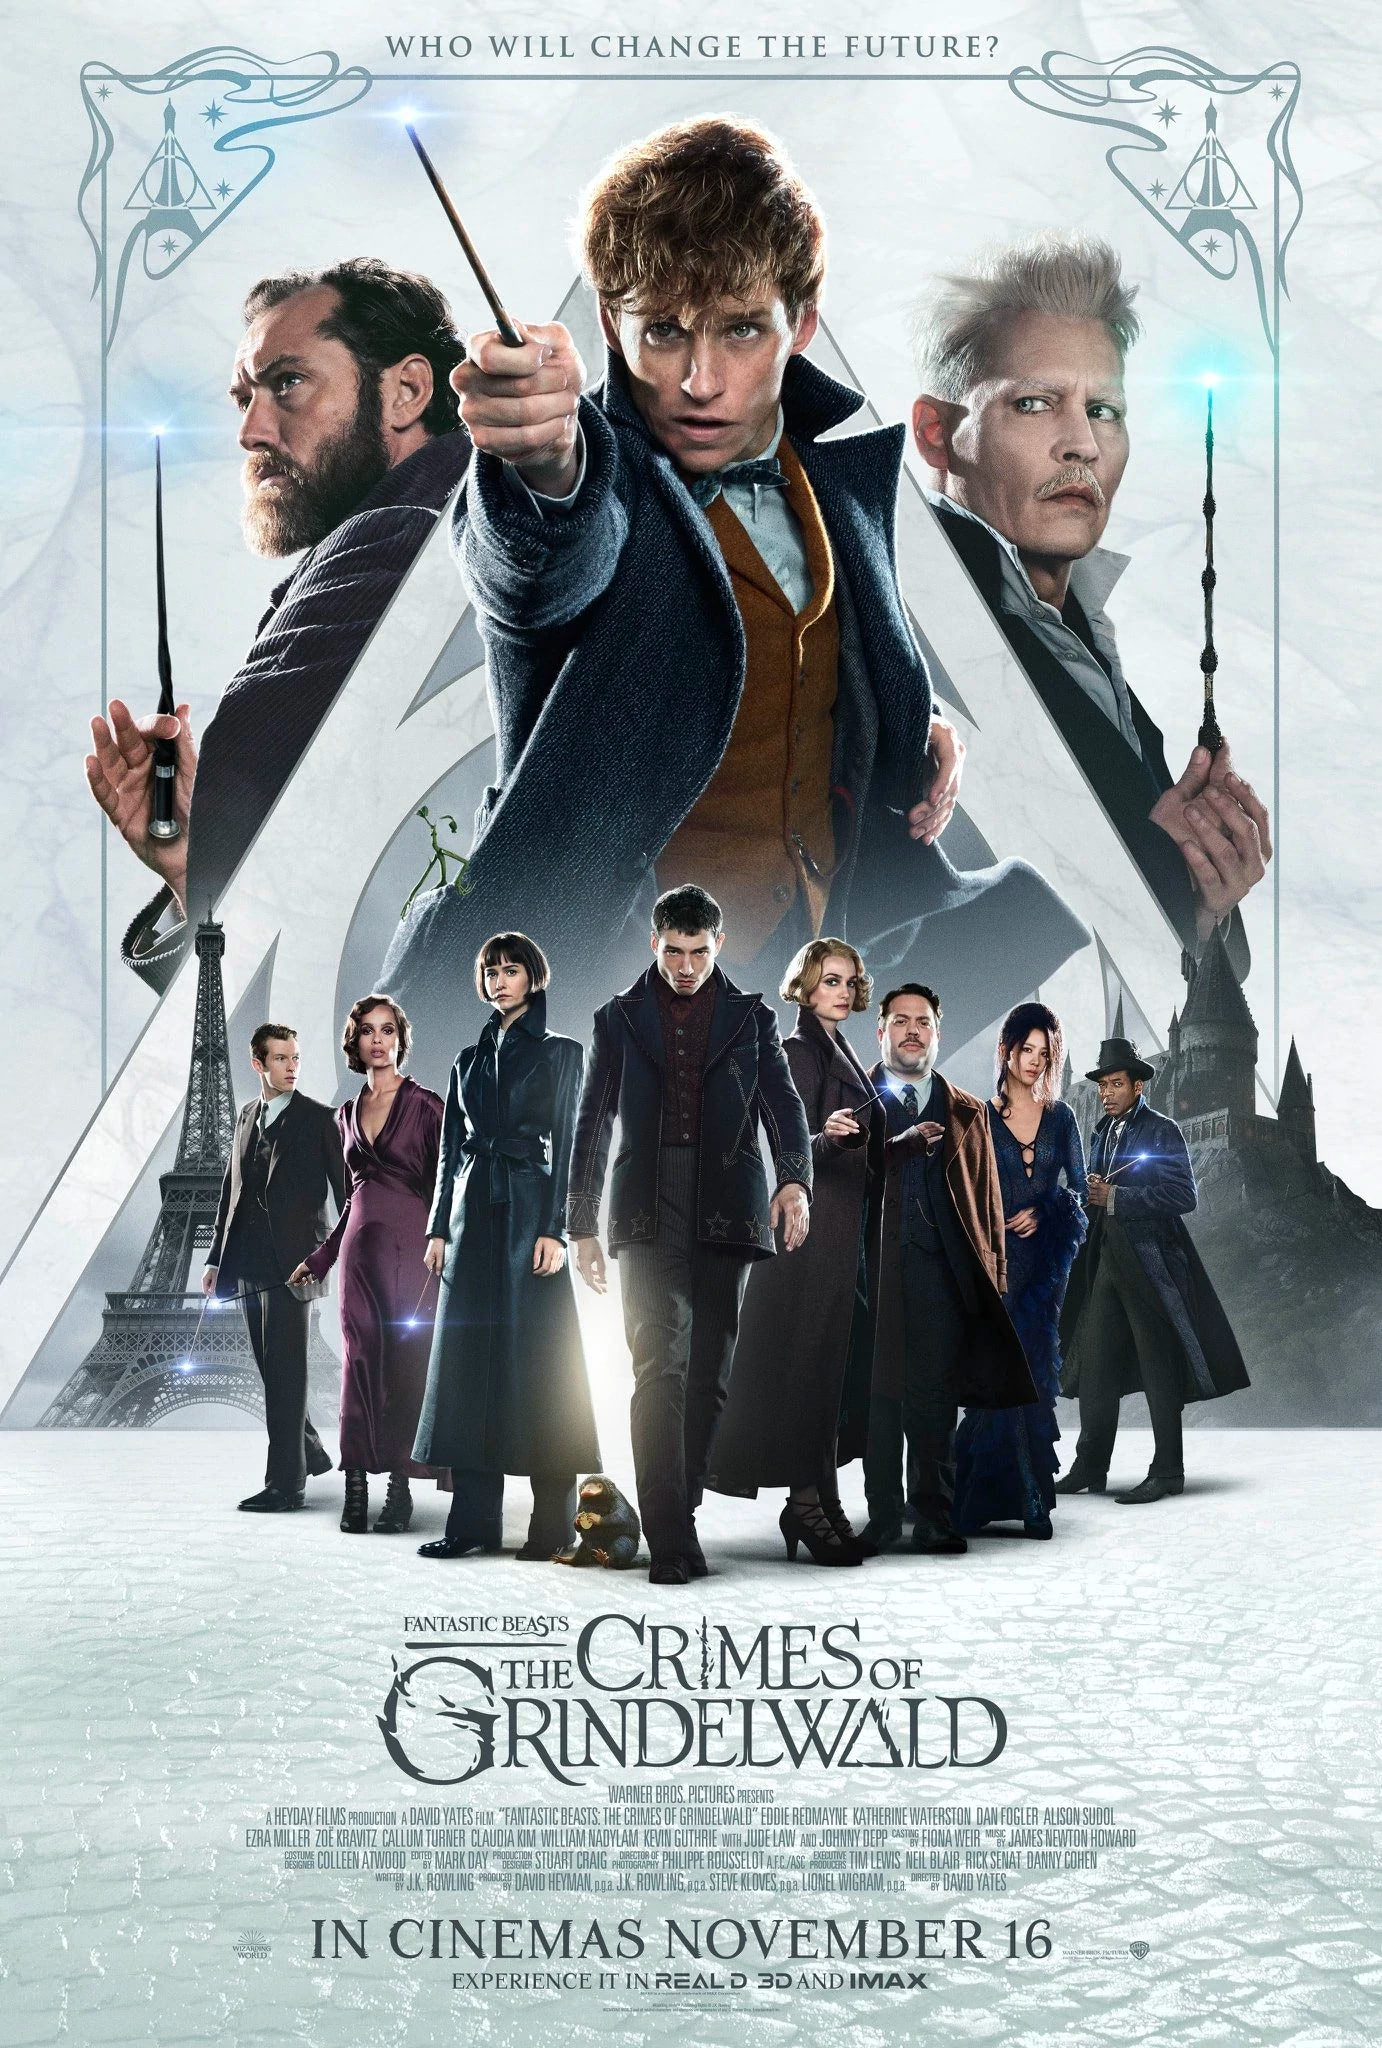 'Crimes of Grindelwald' theatrical poster